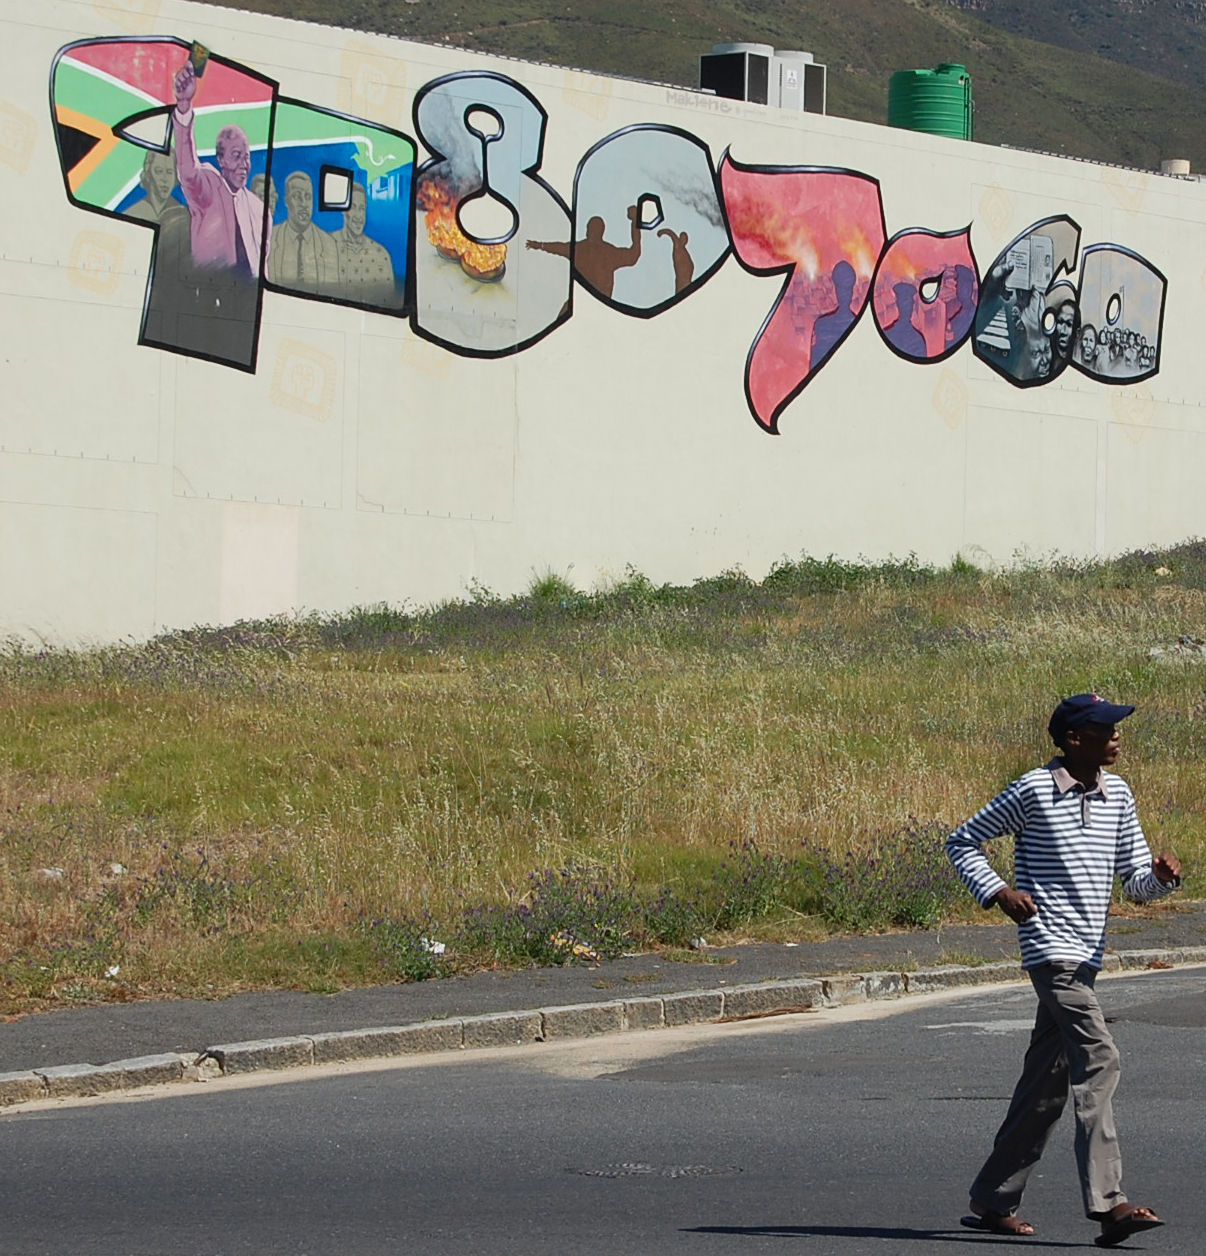 60s 70s 80s 90s revolution route just the artwork and the man.jpg